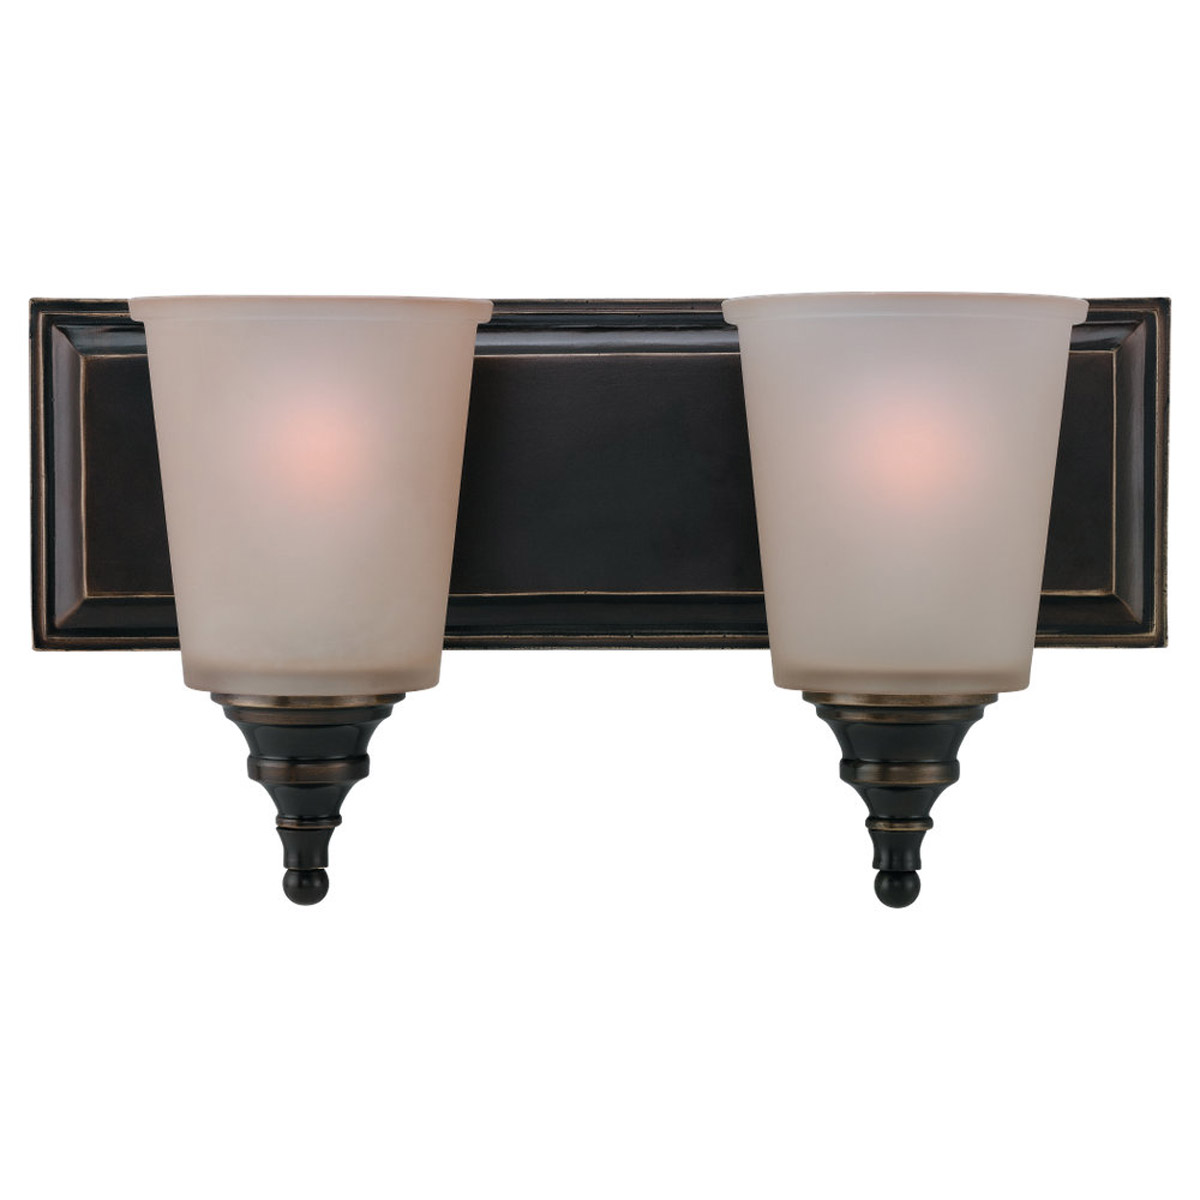 Sea Gull Lighting Warwick 2 Light Bath Vanity in Vintage Bronze 44330-825